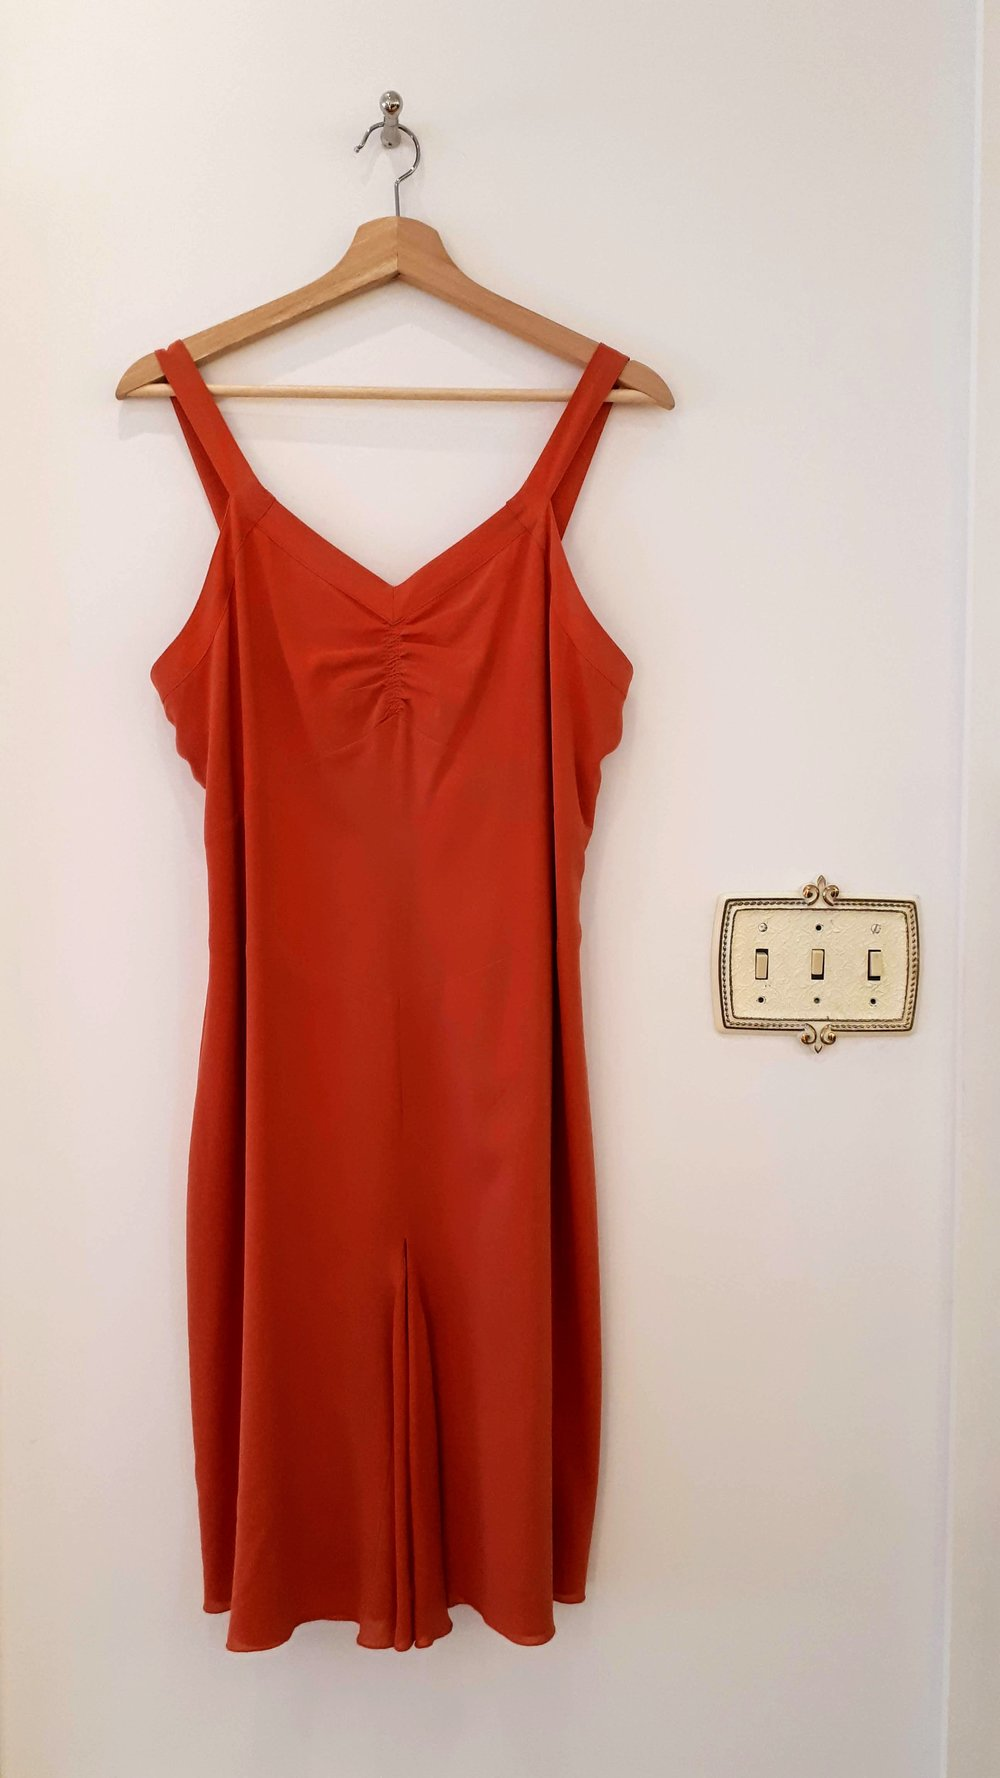 Silk Club Monaco dress; Size 12, regular $52 (on sale for $26!)